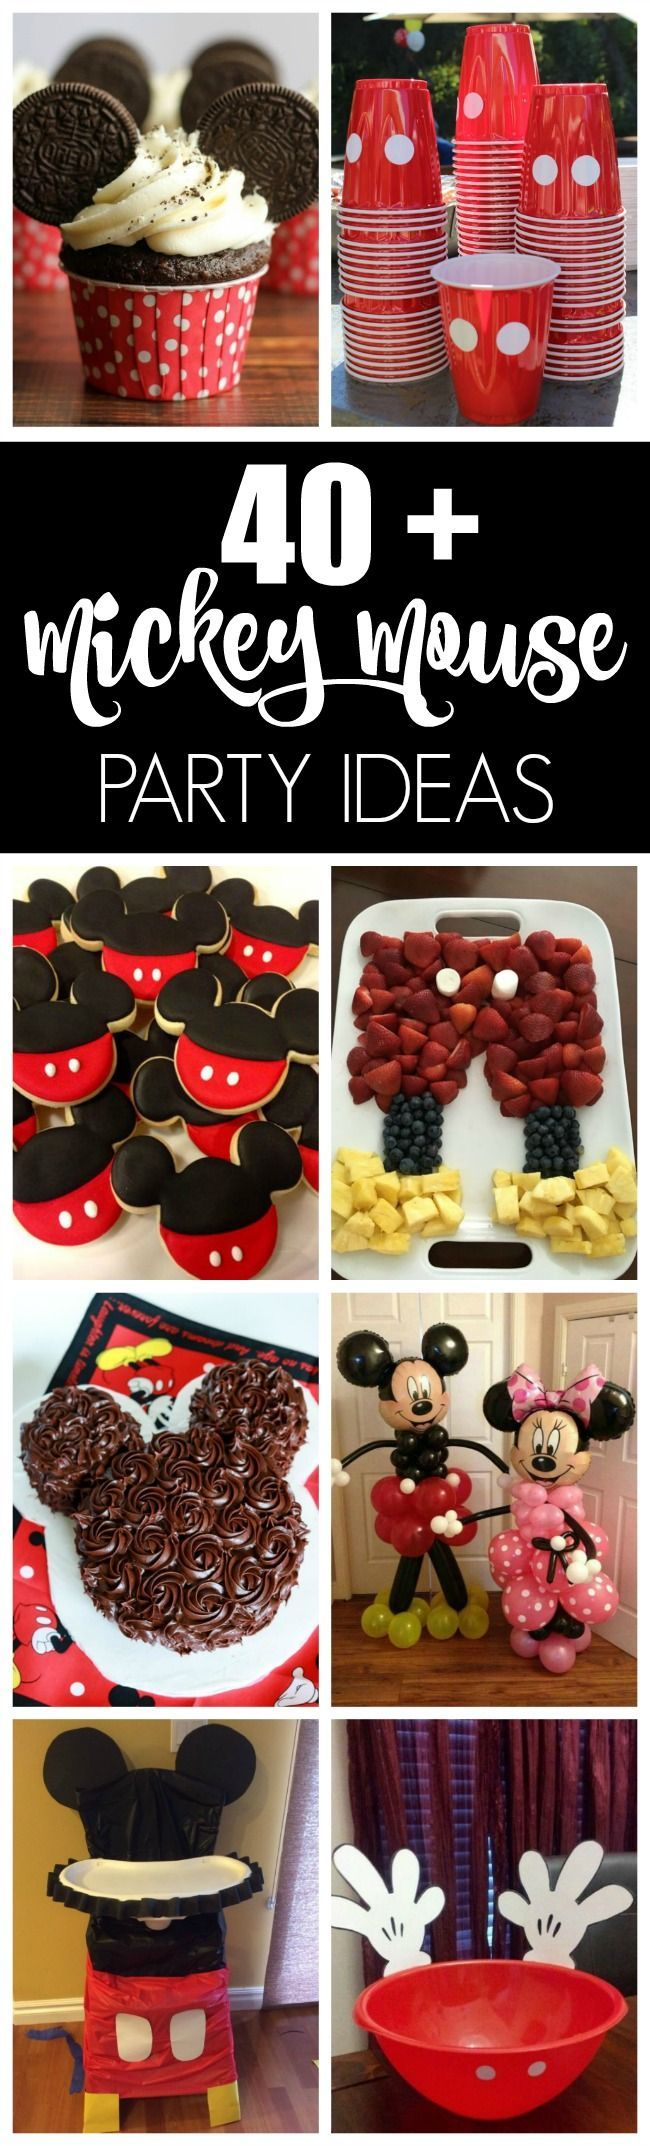 40+ Mickey Mouse Party Ideas | Pretty My Party. Tons of DIY ideas for the best Mickey party!